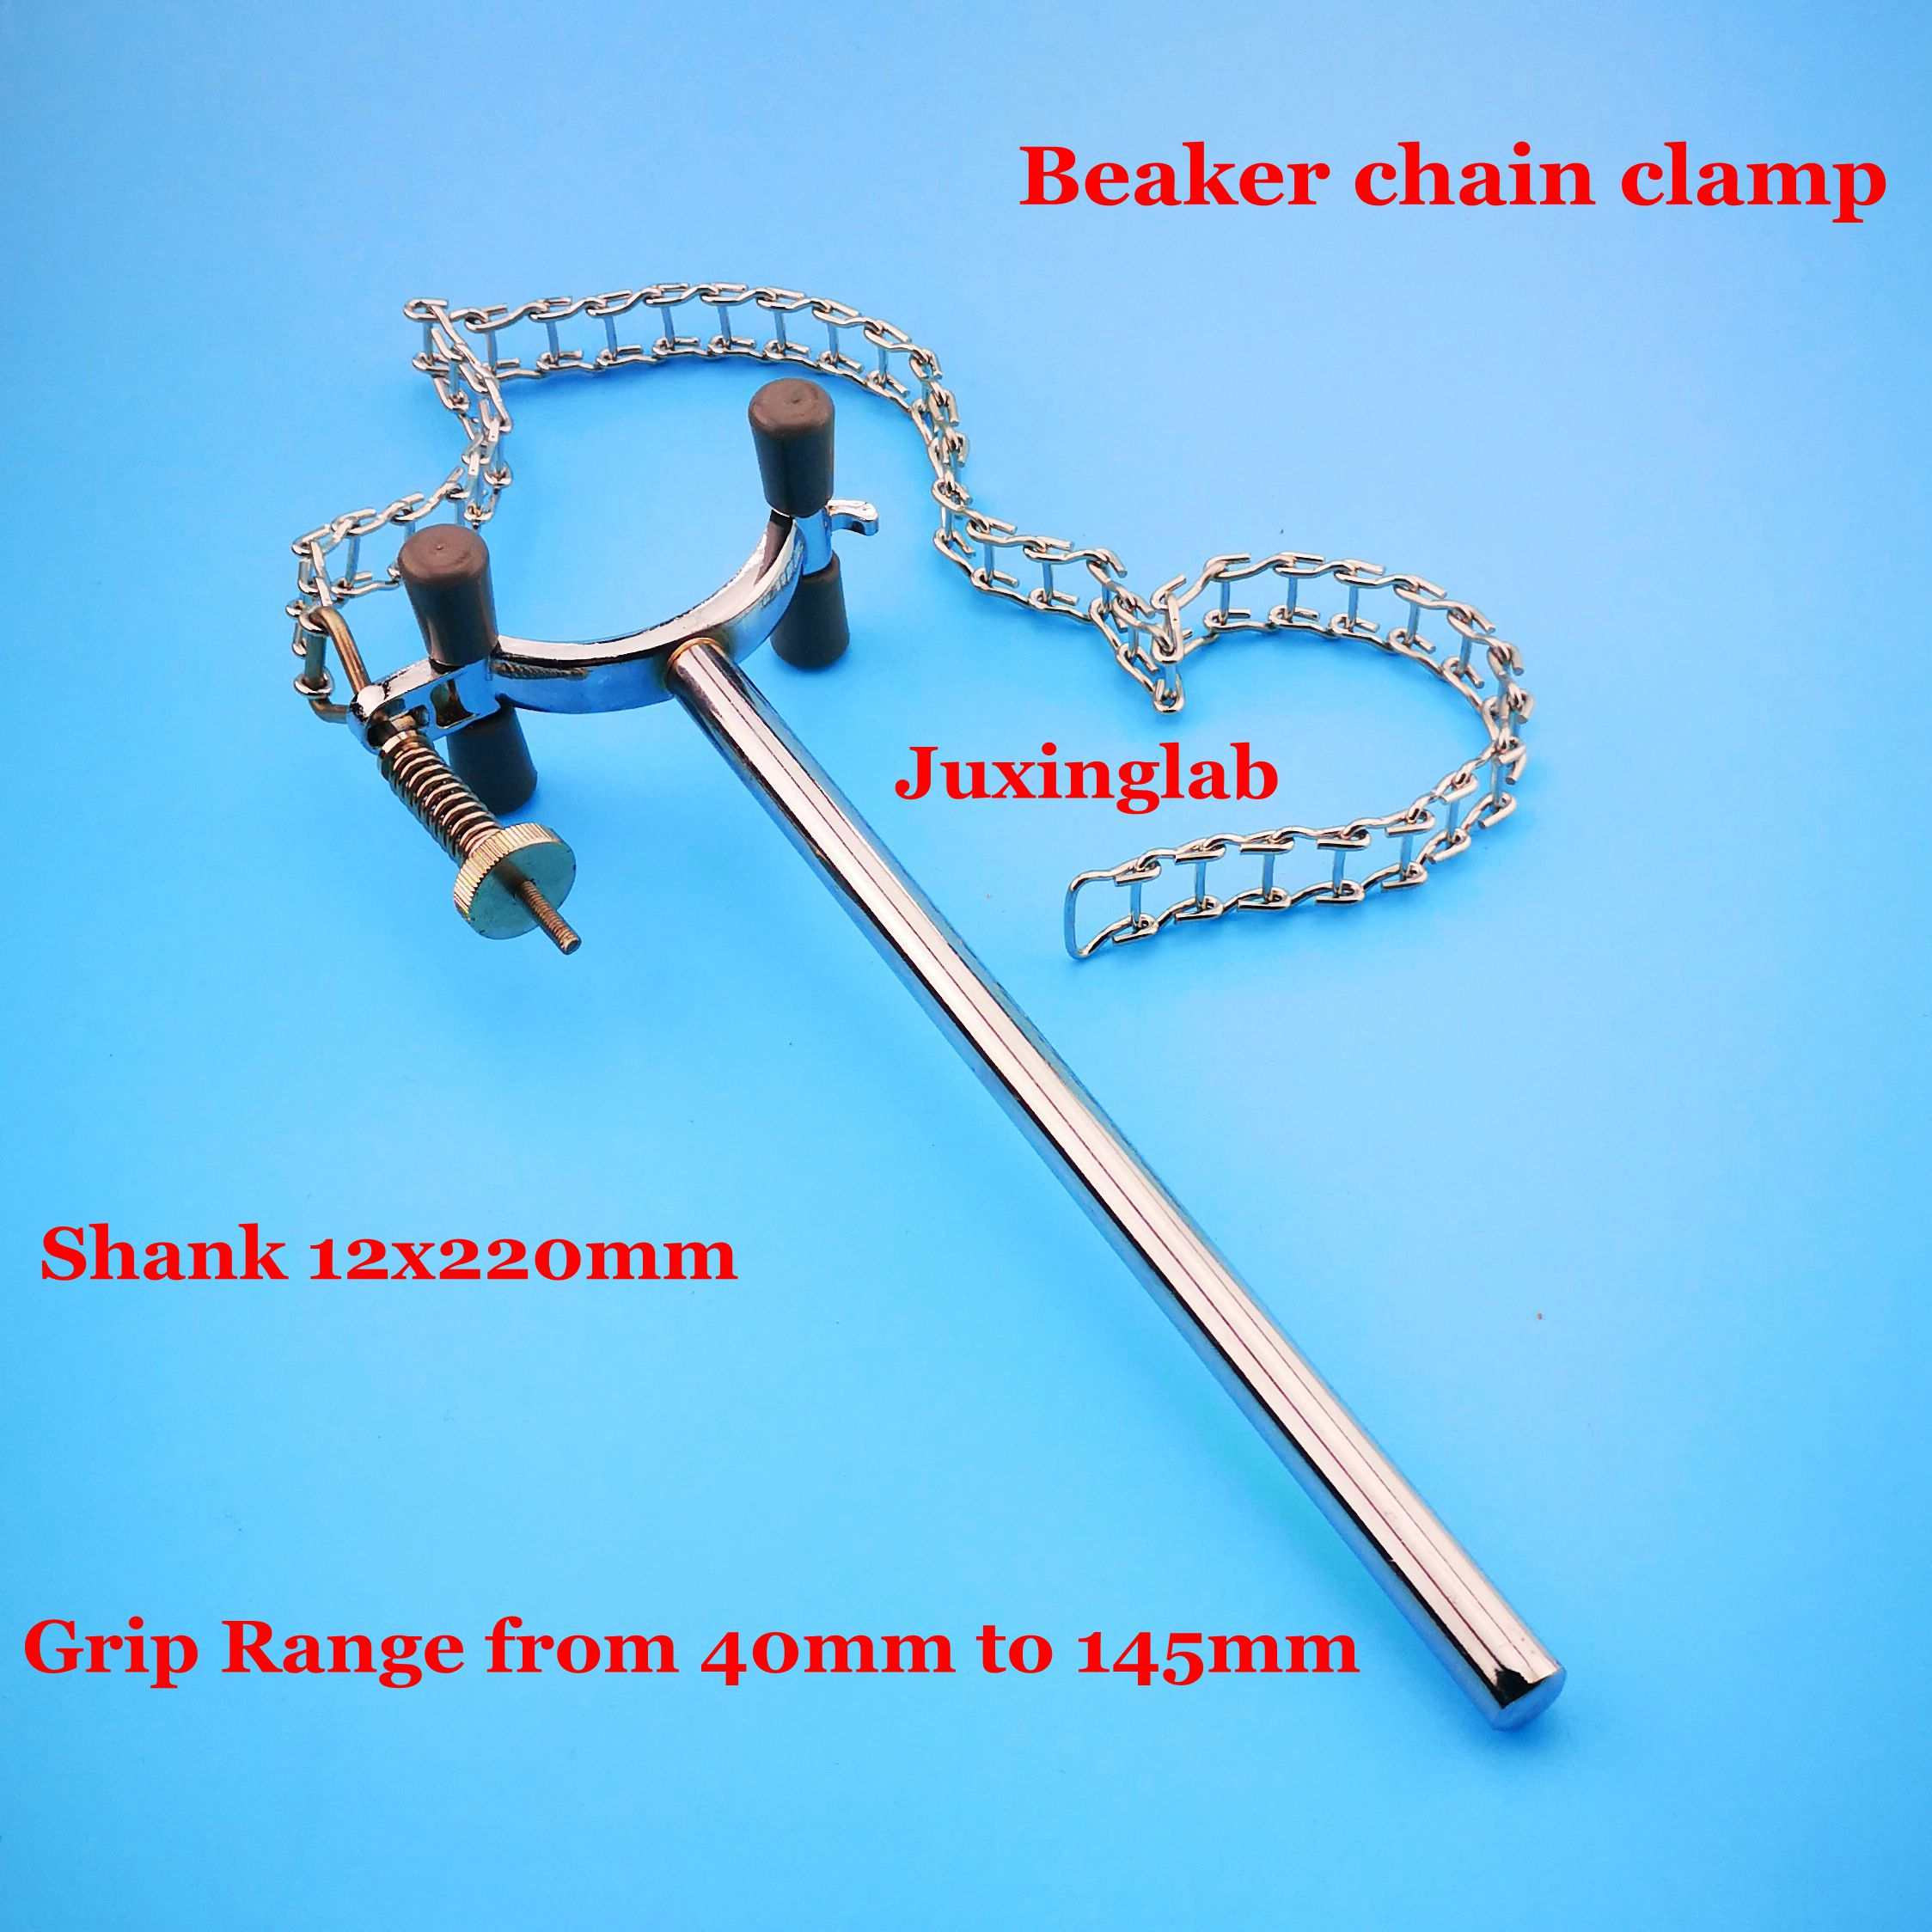 Laboratory Beaker Chain Clamp With Chain And Spring, Made Of AISI304 Stainless Steel For Dia. 40-145mm